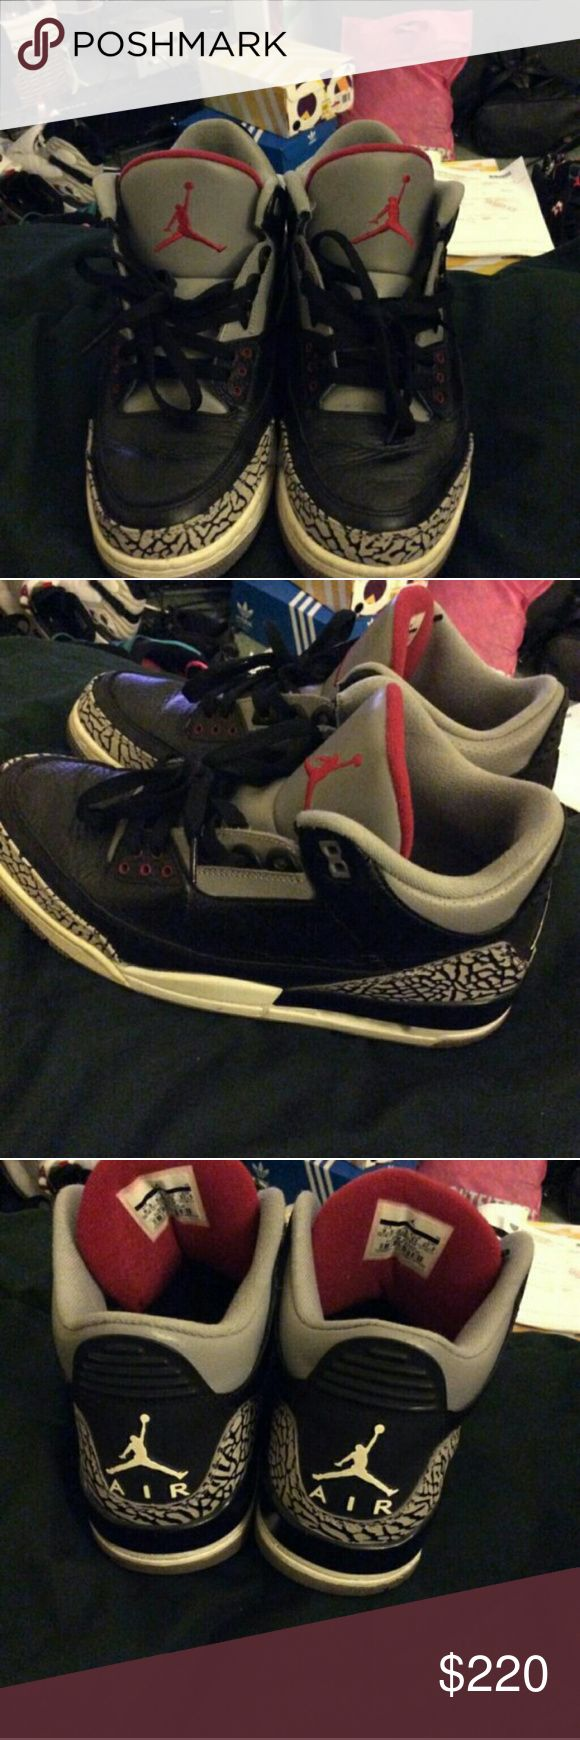 Jordan black cement 3 Jordan black cement 3 size 9.5 work handful of time slight cracking 100 percent authentic missing box , NO TRADES . Jordan Shoes Sneakers